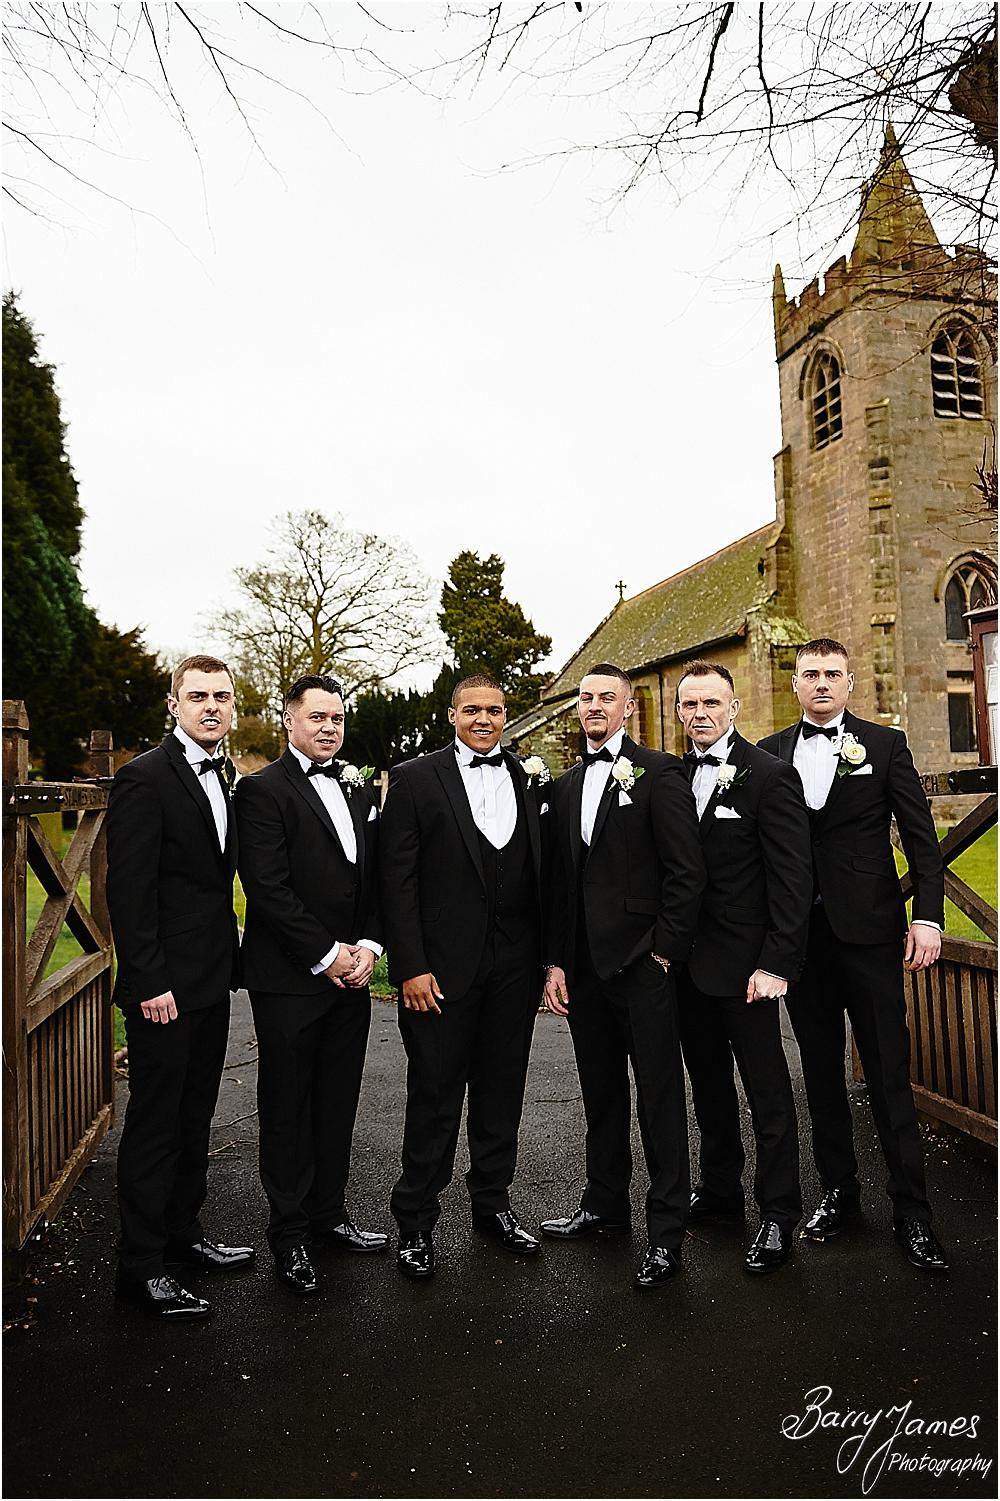 Relaxed contemporary portraits of the groomsmen at St James Church + The Moat House in Acton Trussell by Stafford Wedding Photographers Barry James